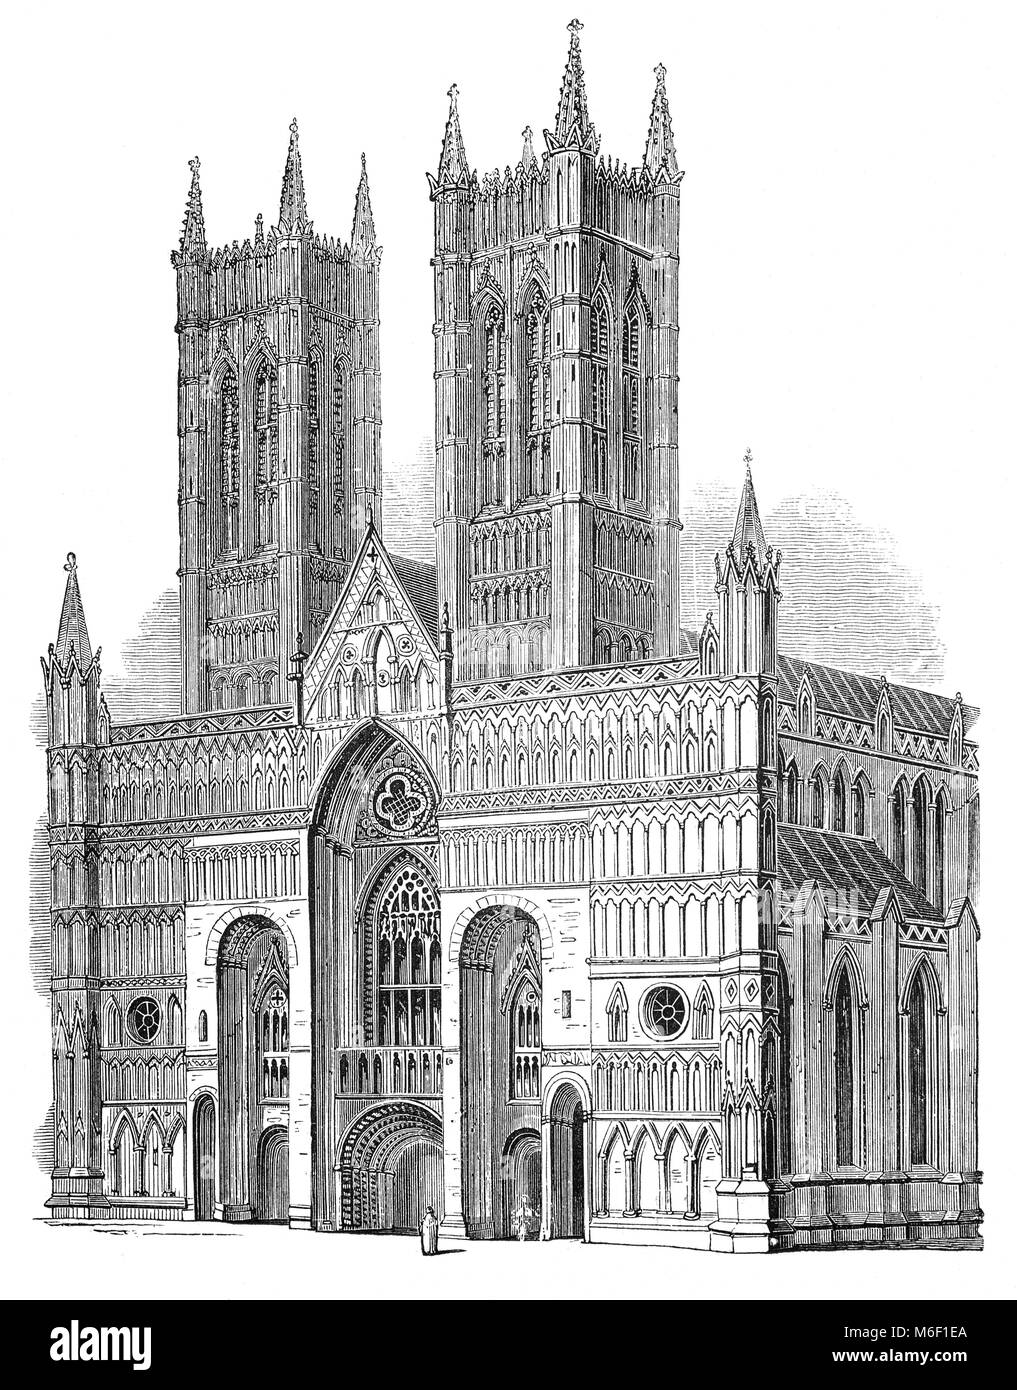 The building of Lincoln Cathedral or the Cathedral Church of the Blessed Virgin Mary of Lincoln in Lincoln, England Stock Photo